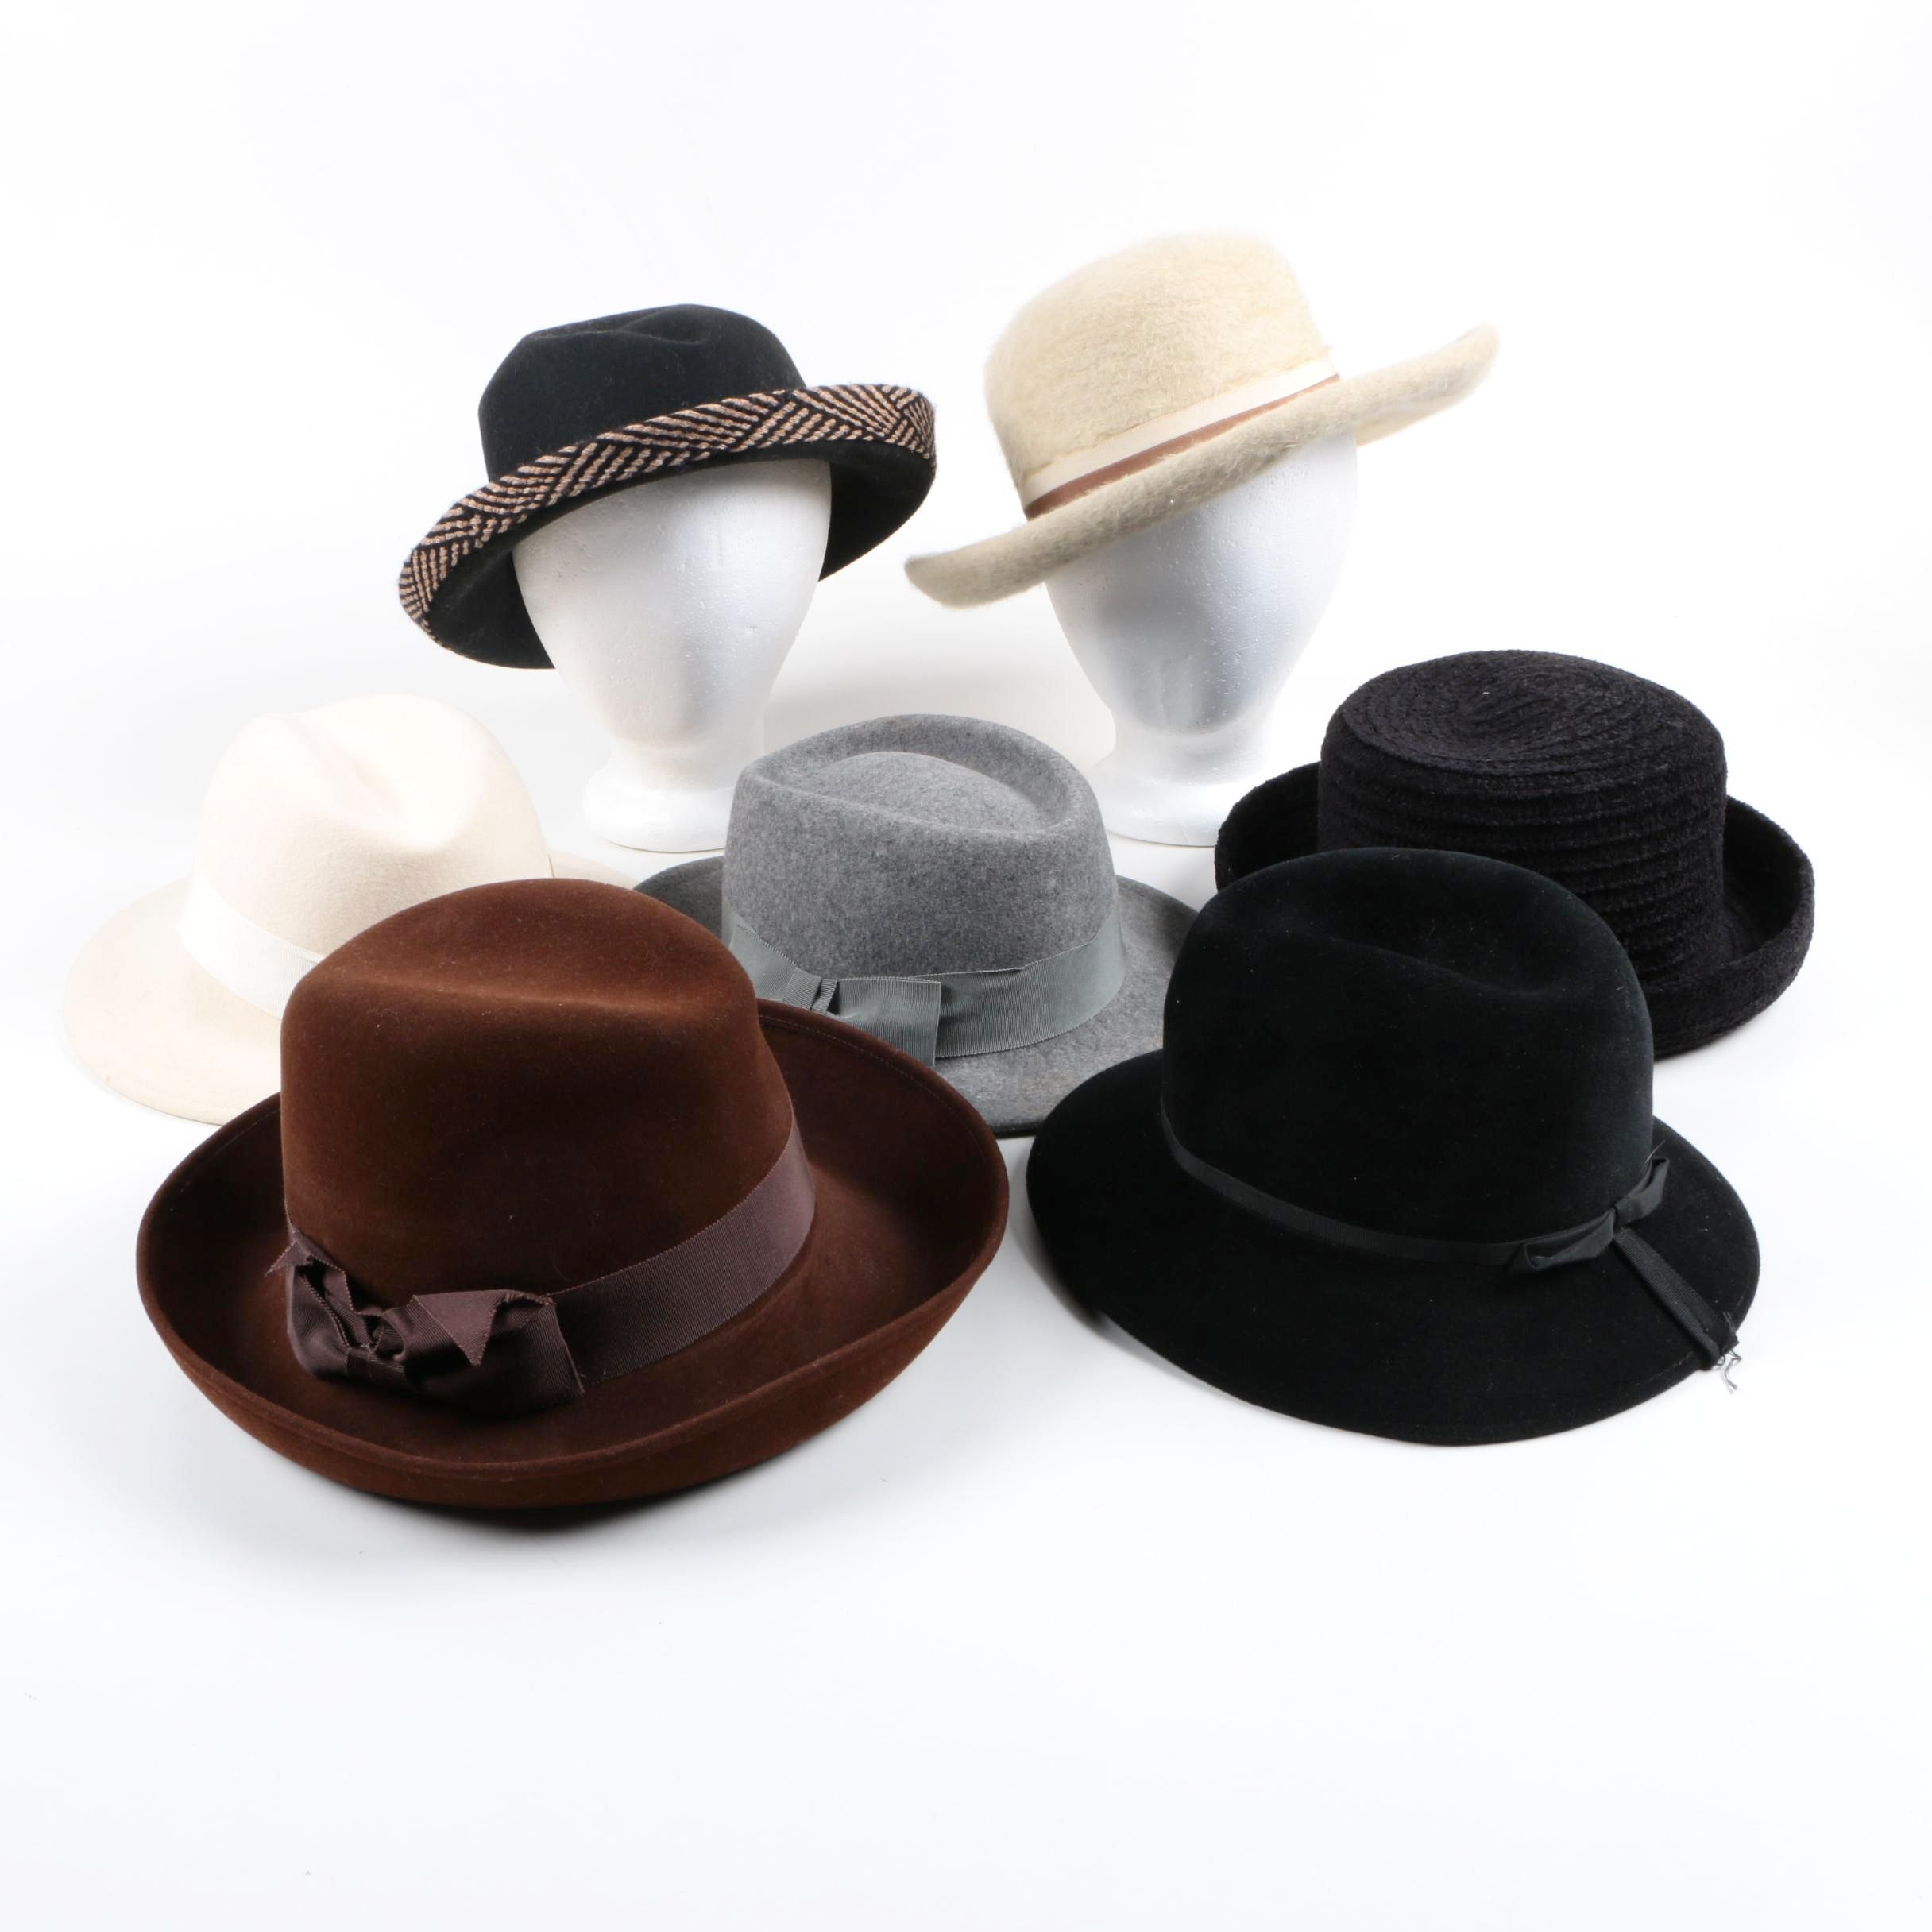 Women's Vintage Fedoras and Sun Hat